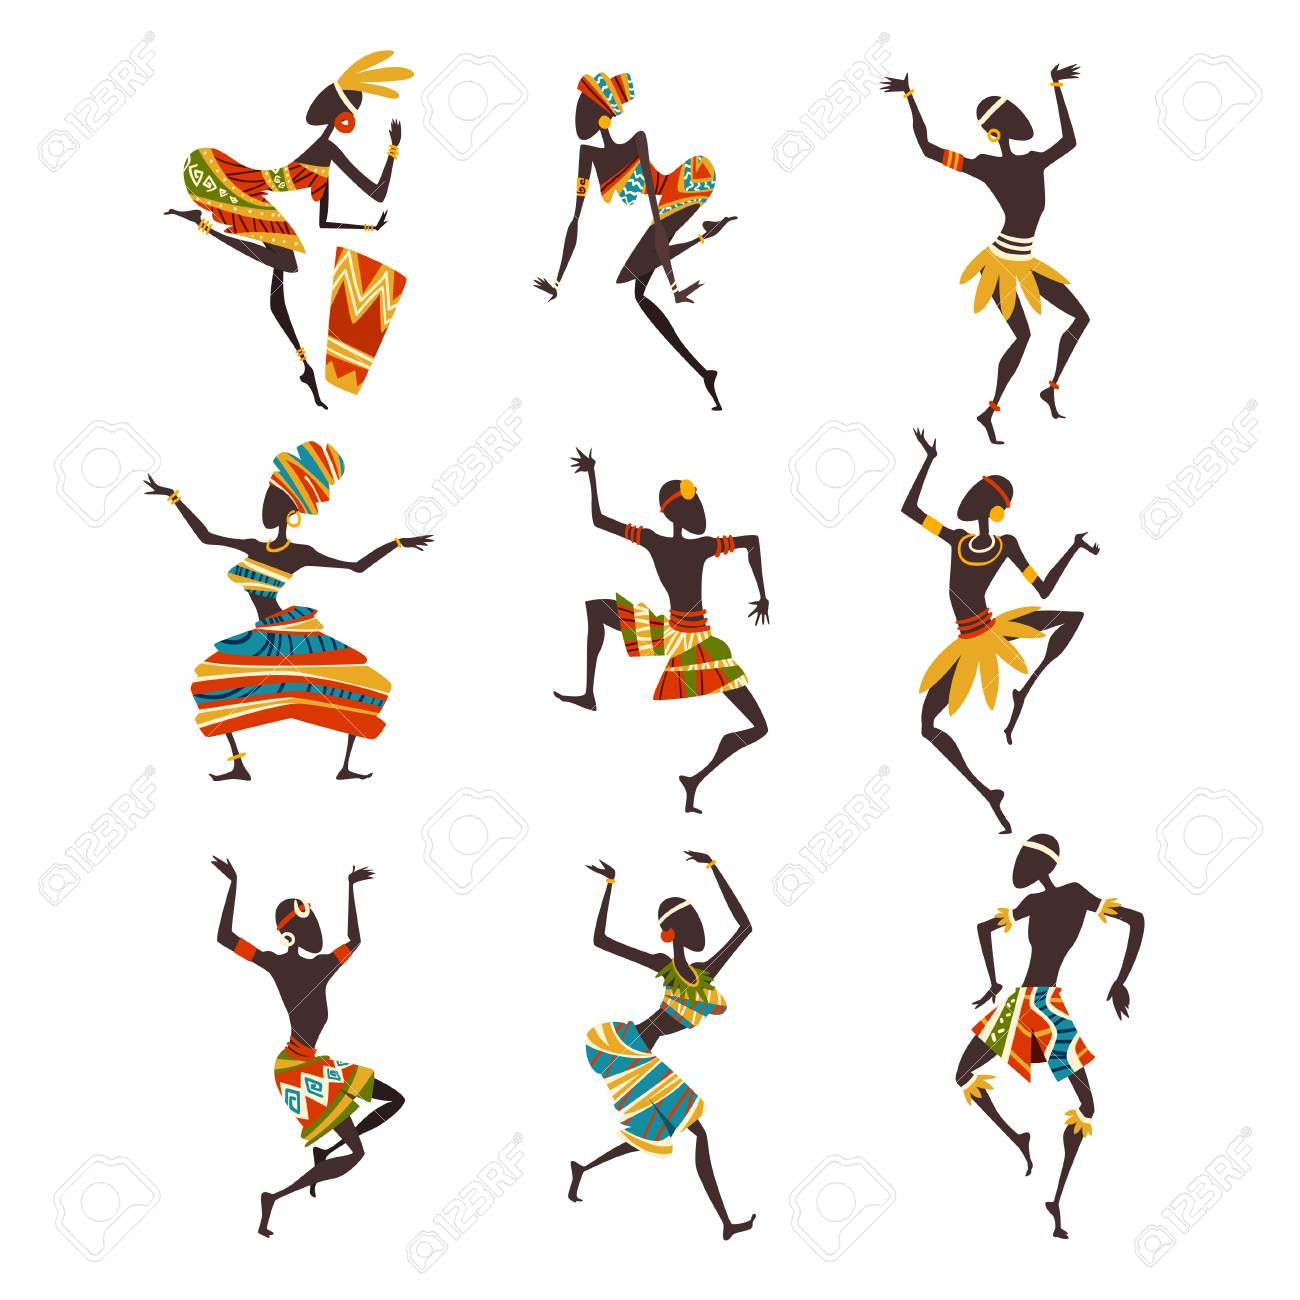 African People Dancing Folk or Ritual Dance Set, Female and Male Aboriginal Dancers in Bright Ornamented Ethnic Clothing Vector Illustration on White Background. - 124611768